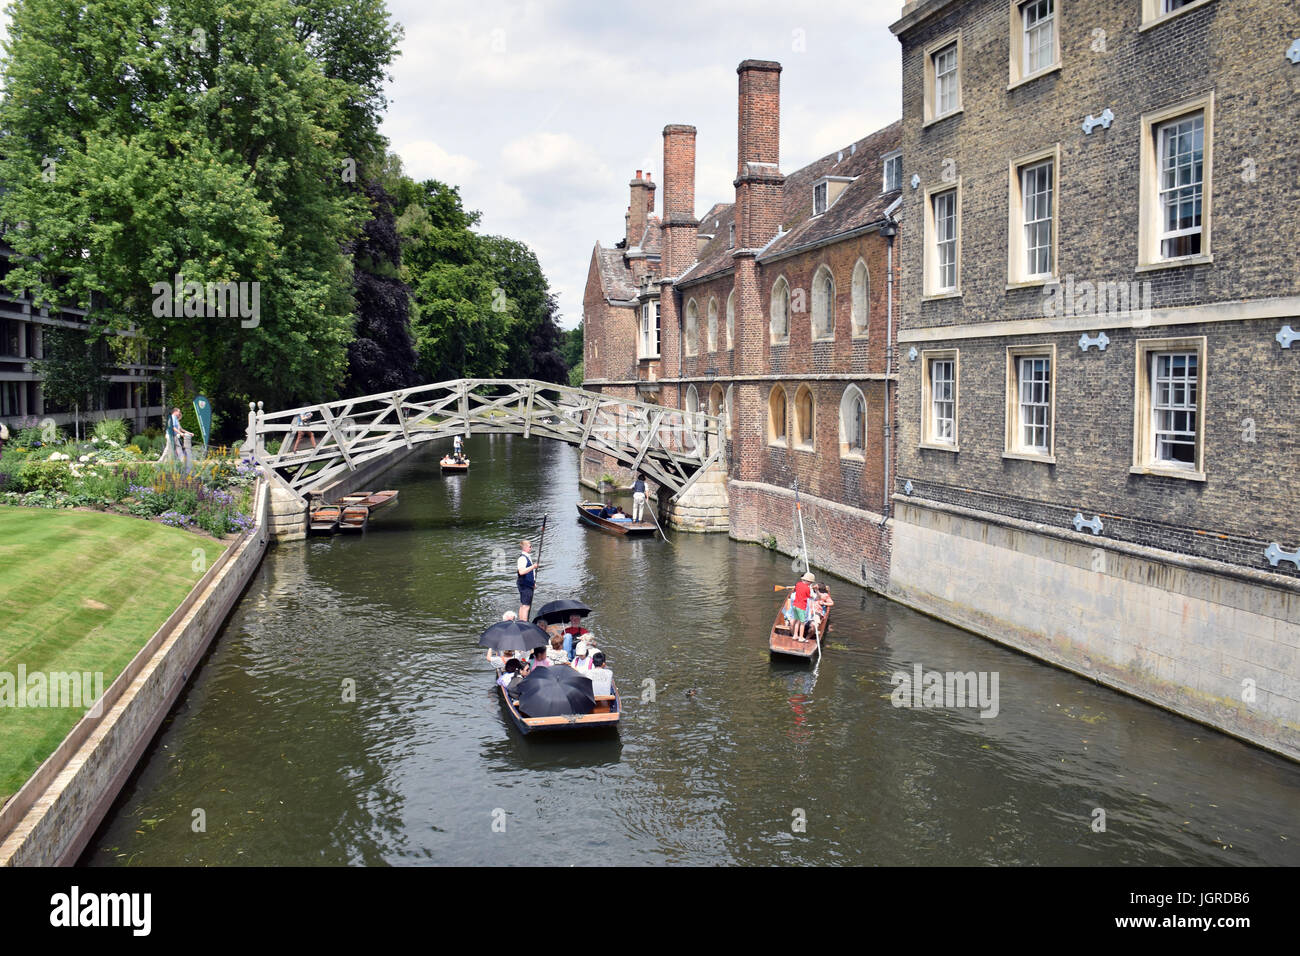 Punting River Cam, Cambridge UK July 2017 - Stock Image